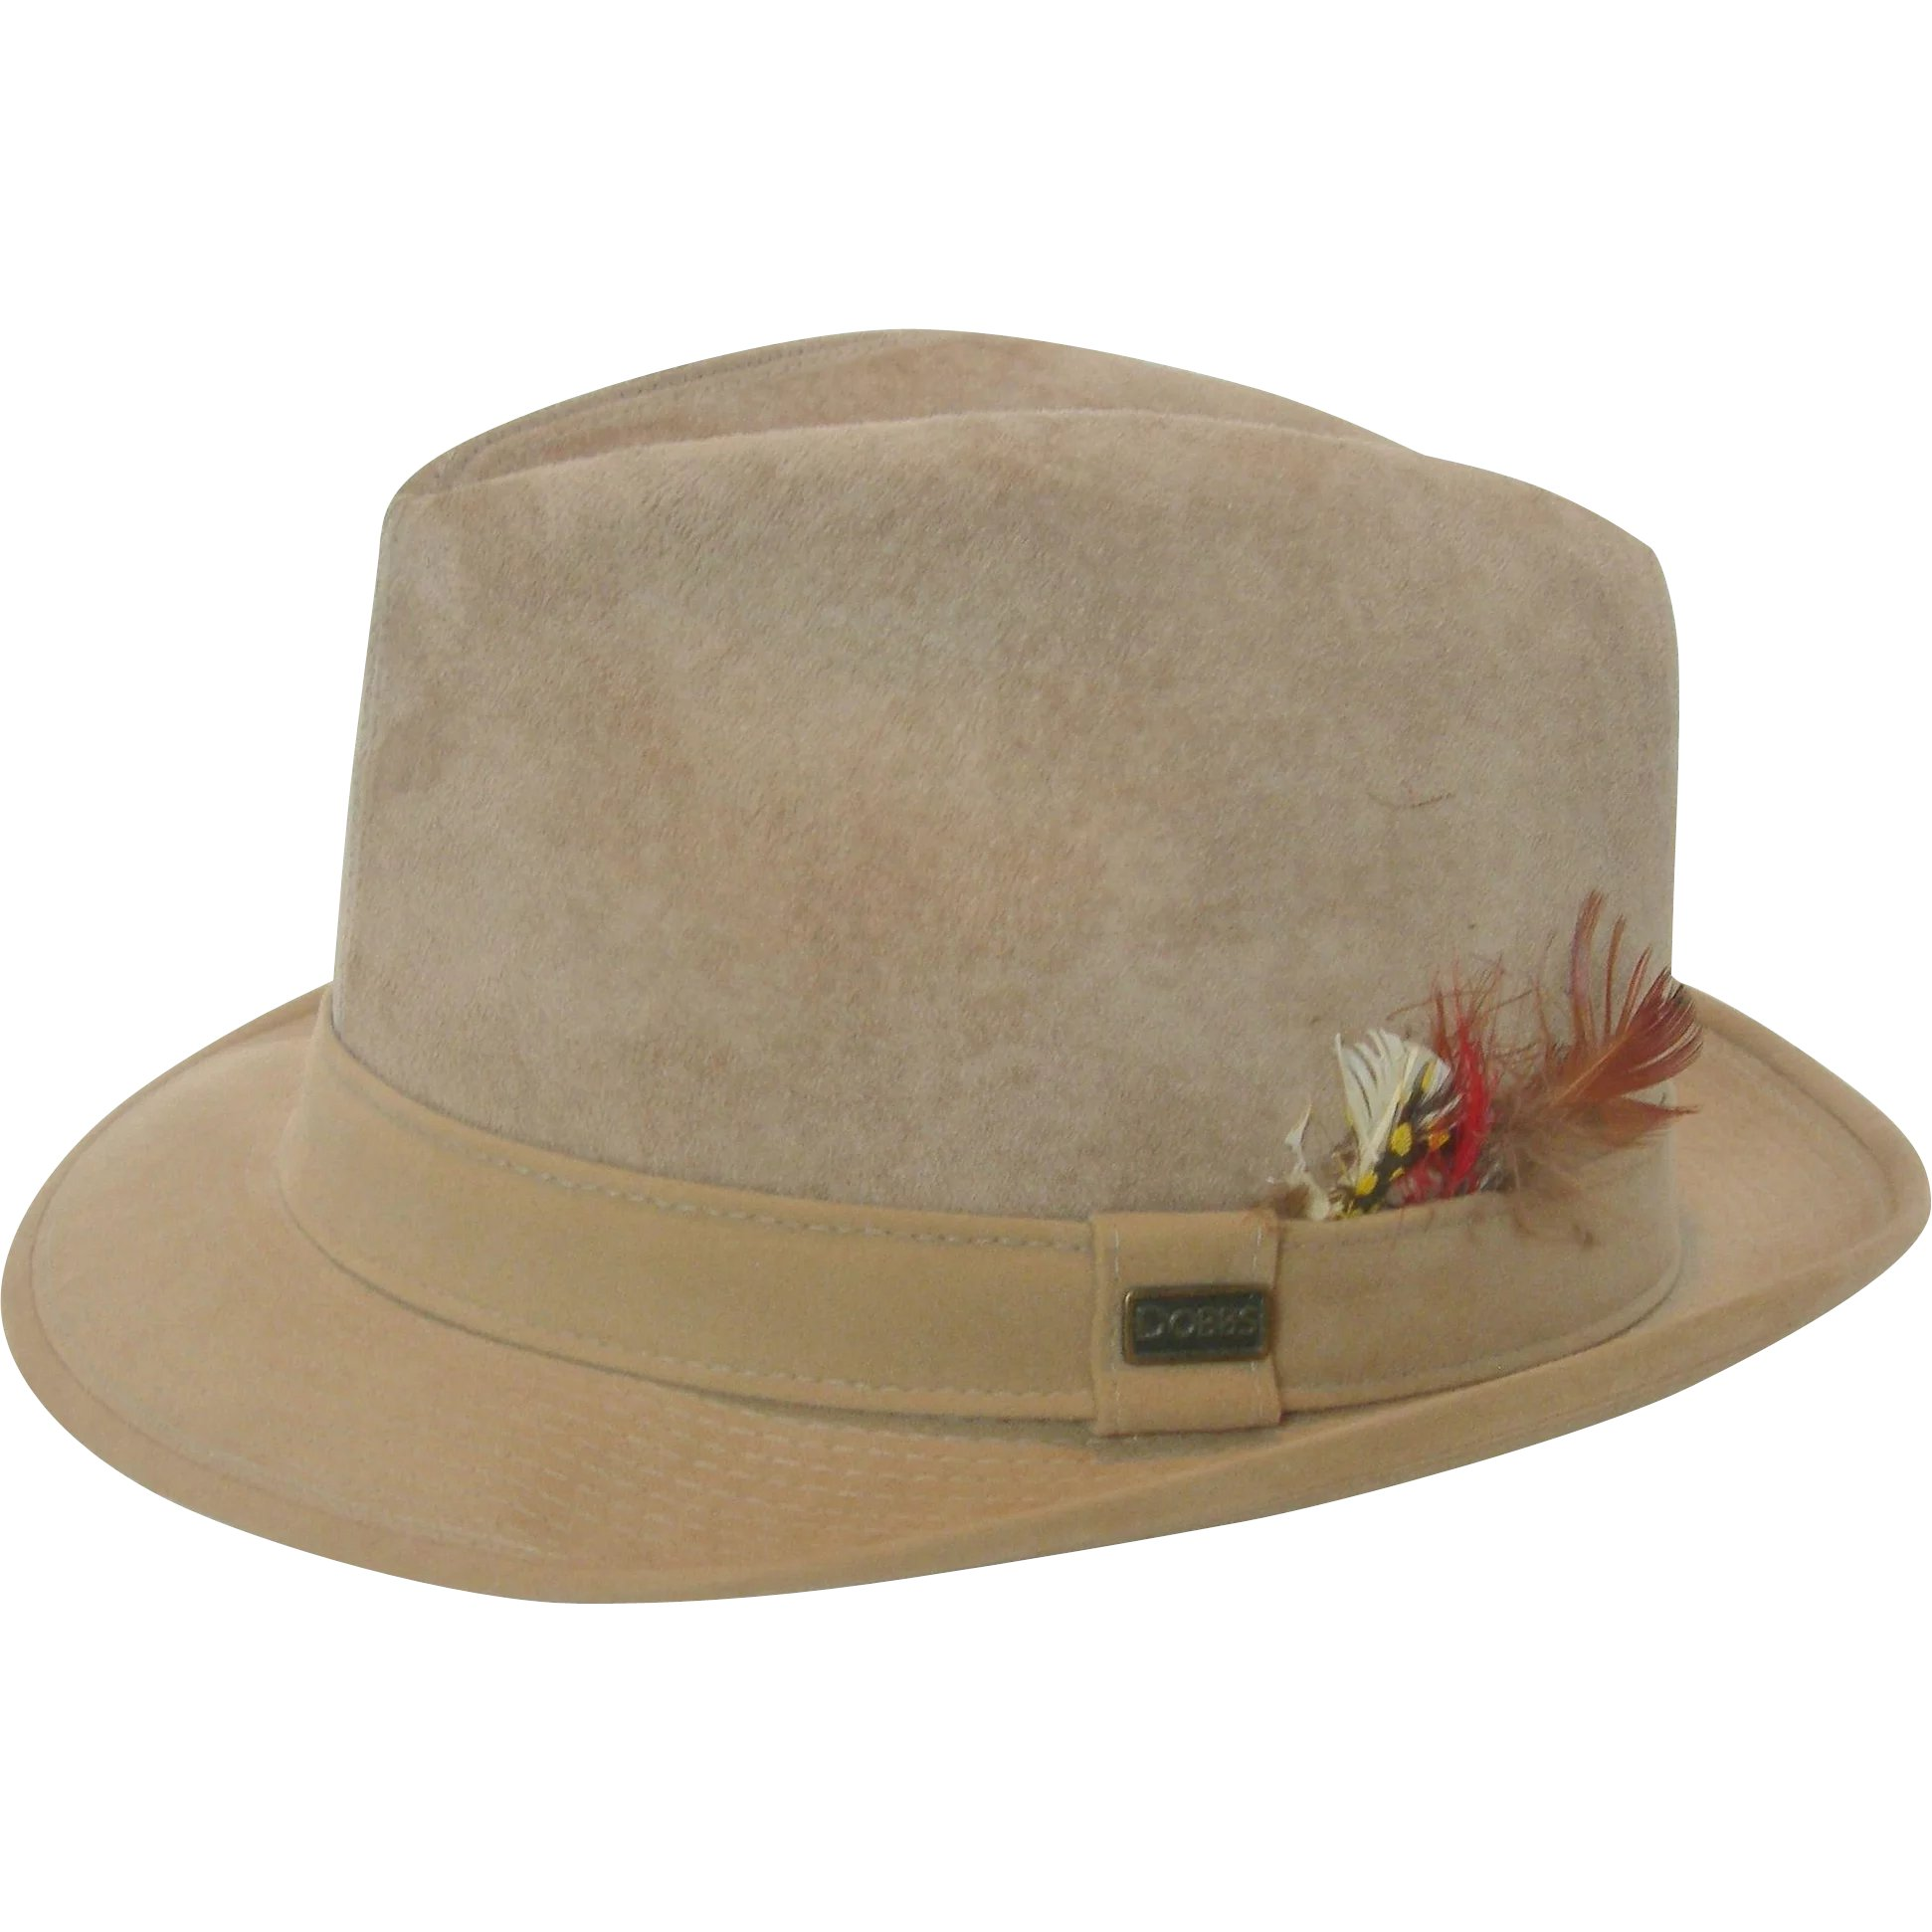 a527467befcd4 Fur Fedora From Yvonne s Fedora Men S Vintage Dobbs Fifth Avenue  Vintage  Dobbs Fifth Avenue Suede Short-Brimmed